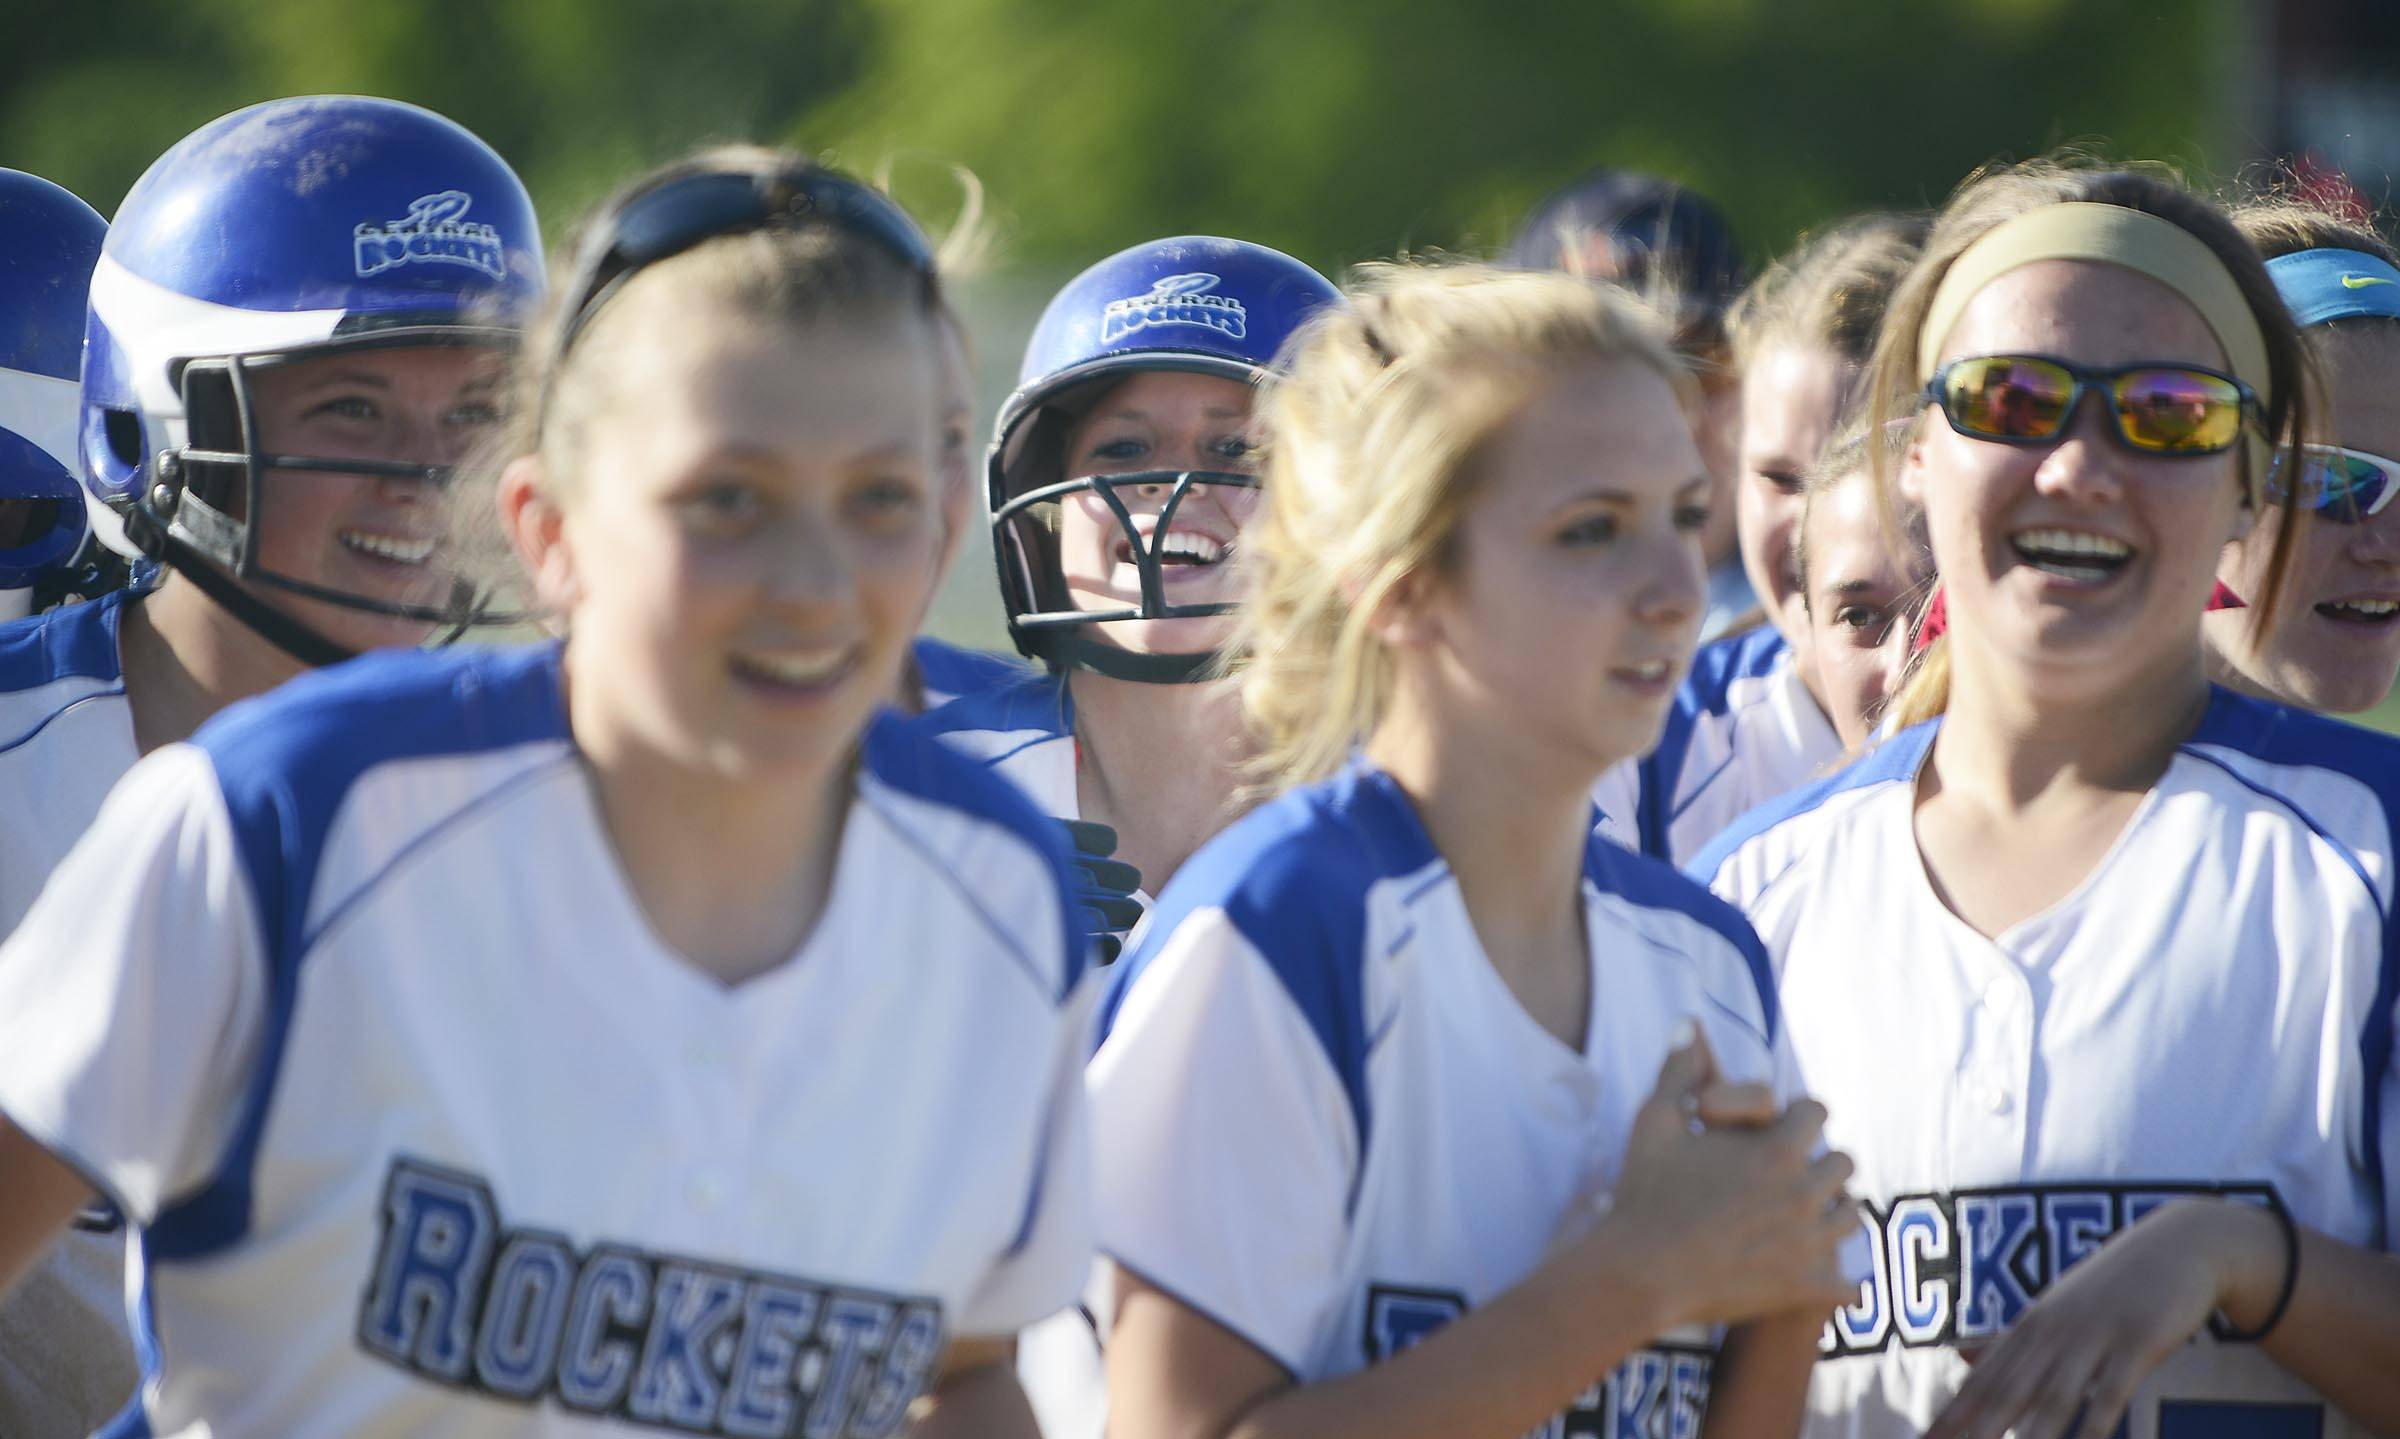 Burlington Central's Brooke Gaylord laughs after her seventh inning two-run home run that tied the score against Sterling Tuesday in the Class 3A Marengo sectional semifinal game. The Rockets lost in eight innings.